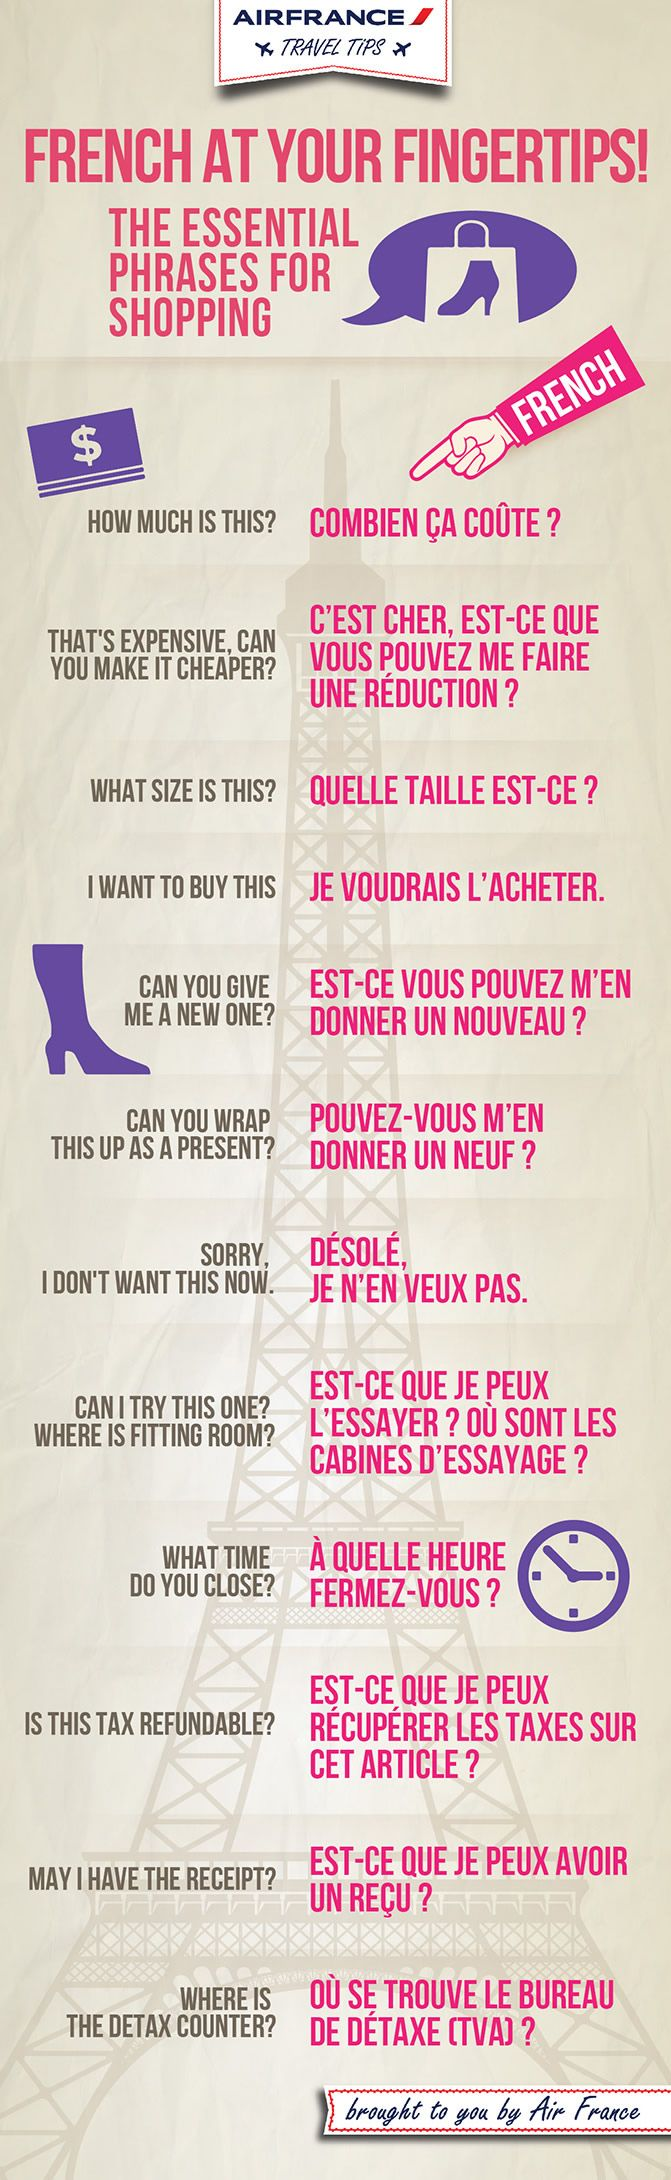 The essential (french) phrases for shopping